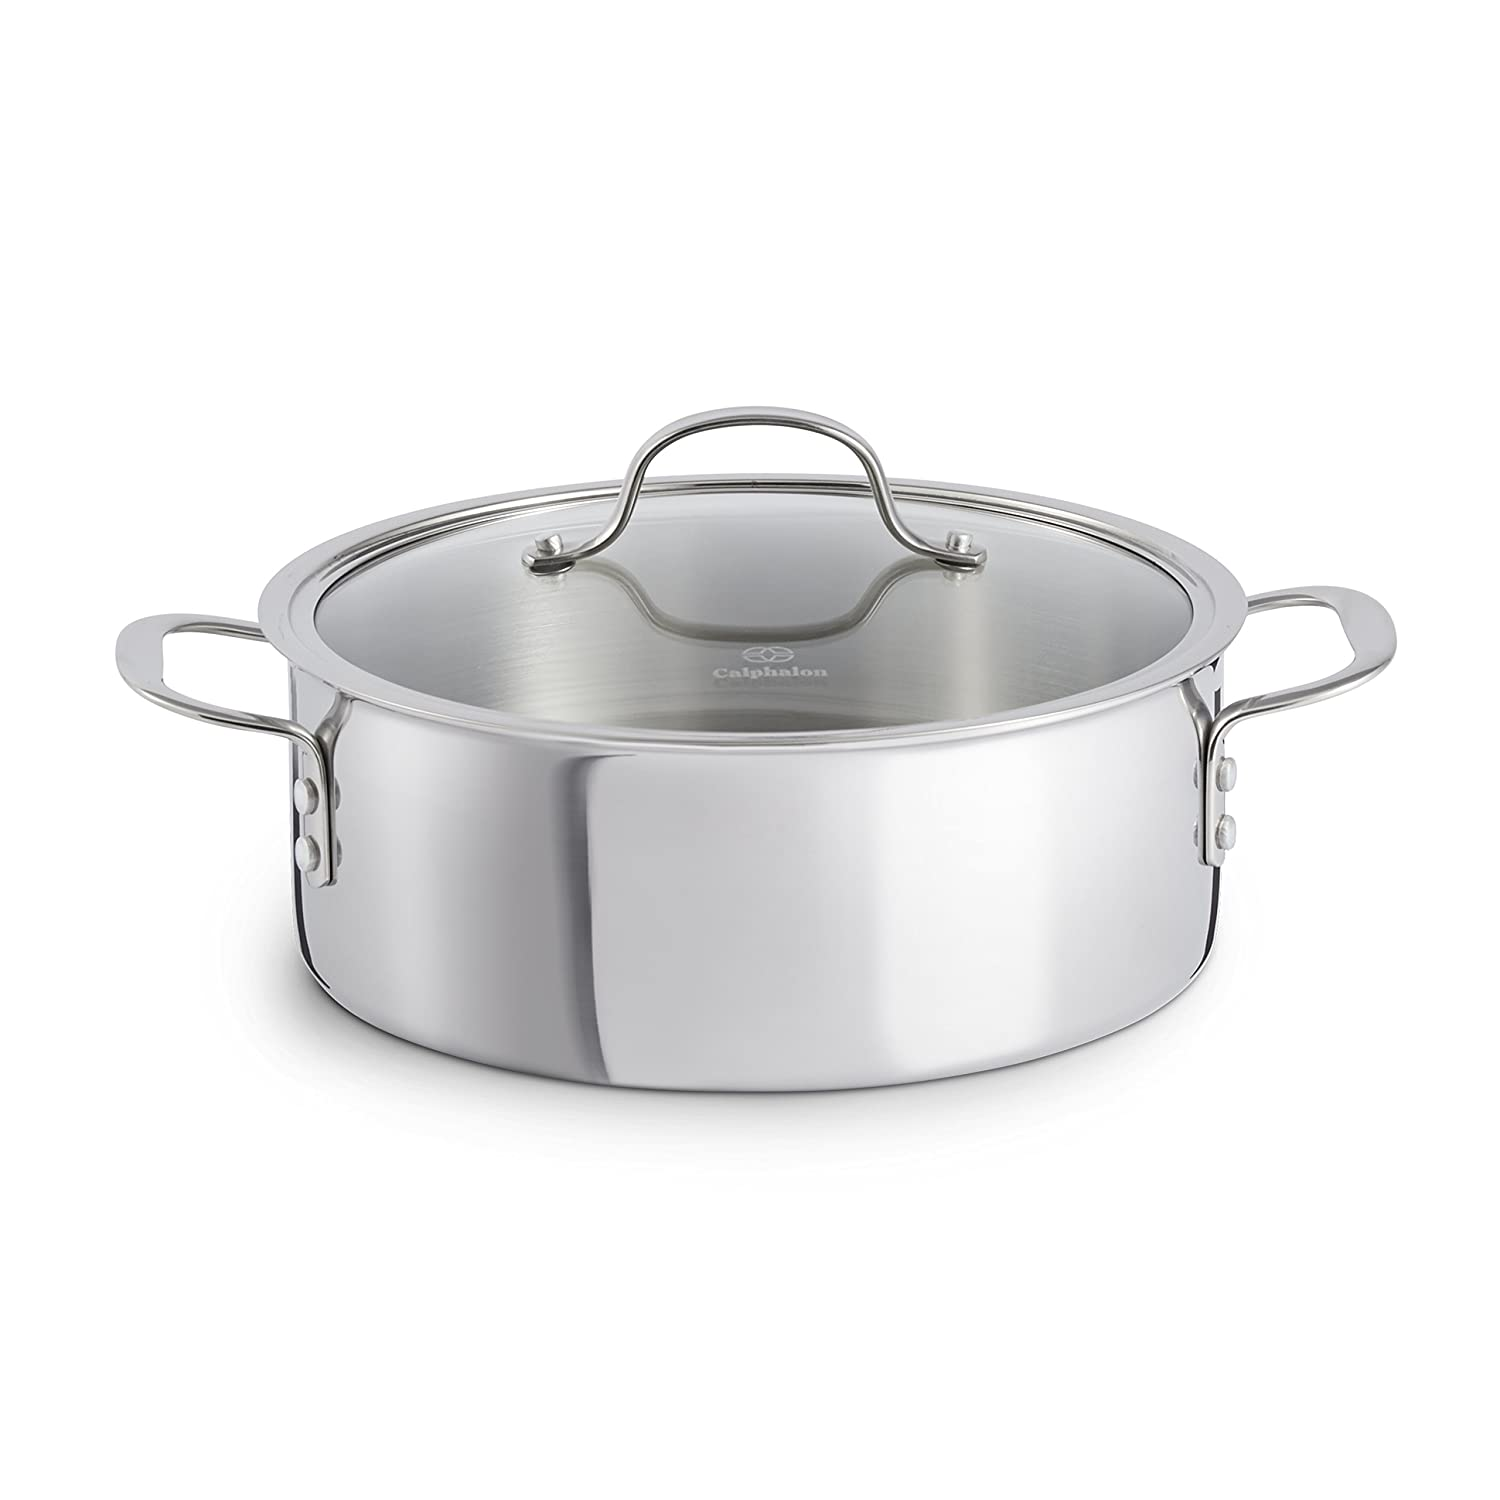 Calphalon Tri-Ply Stainless Steel Cookware, Dutch Oven, 5-quart